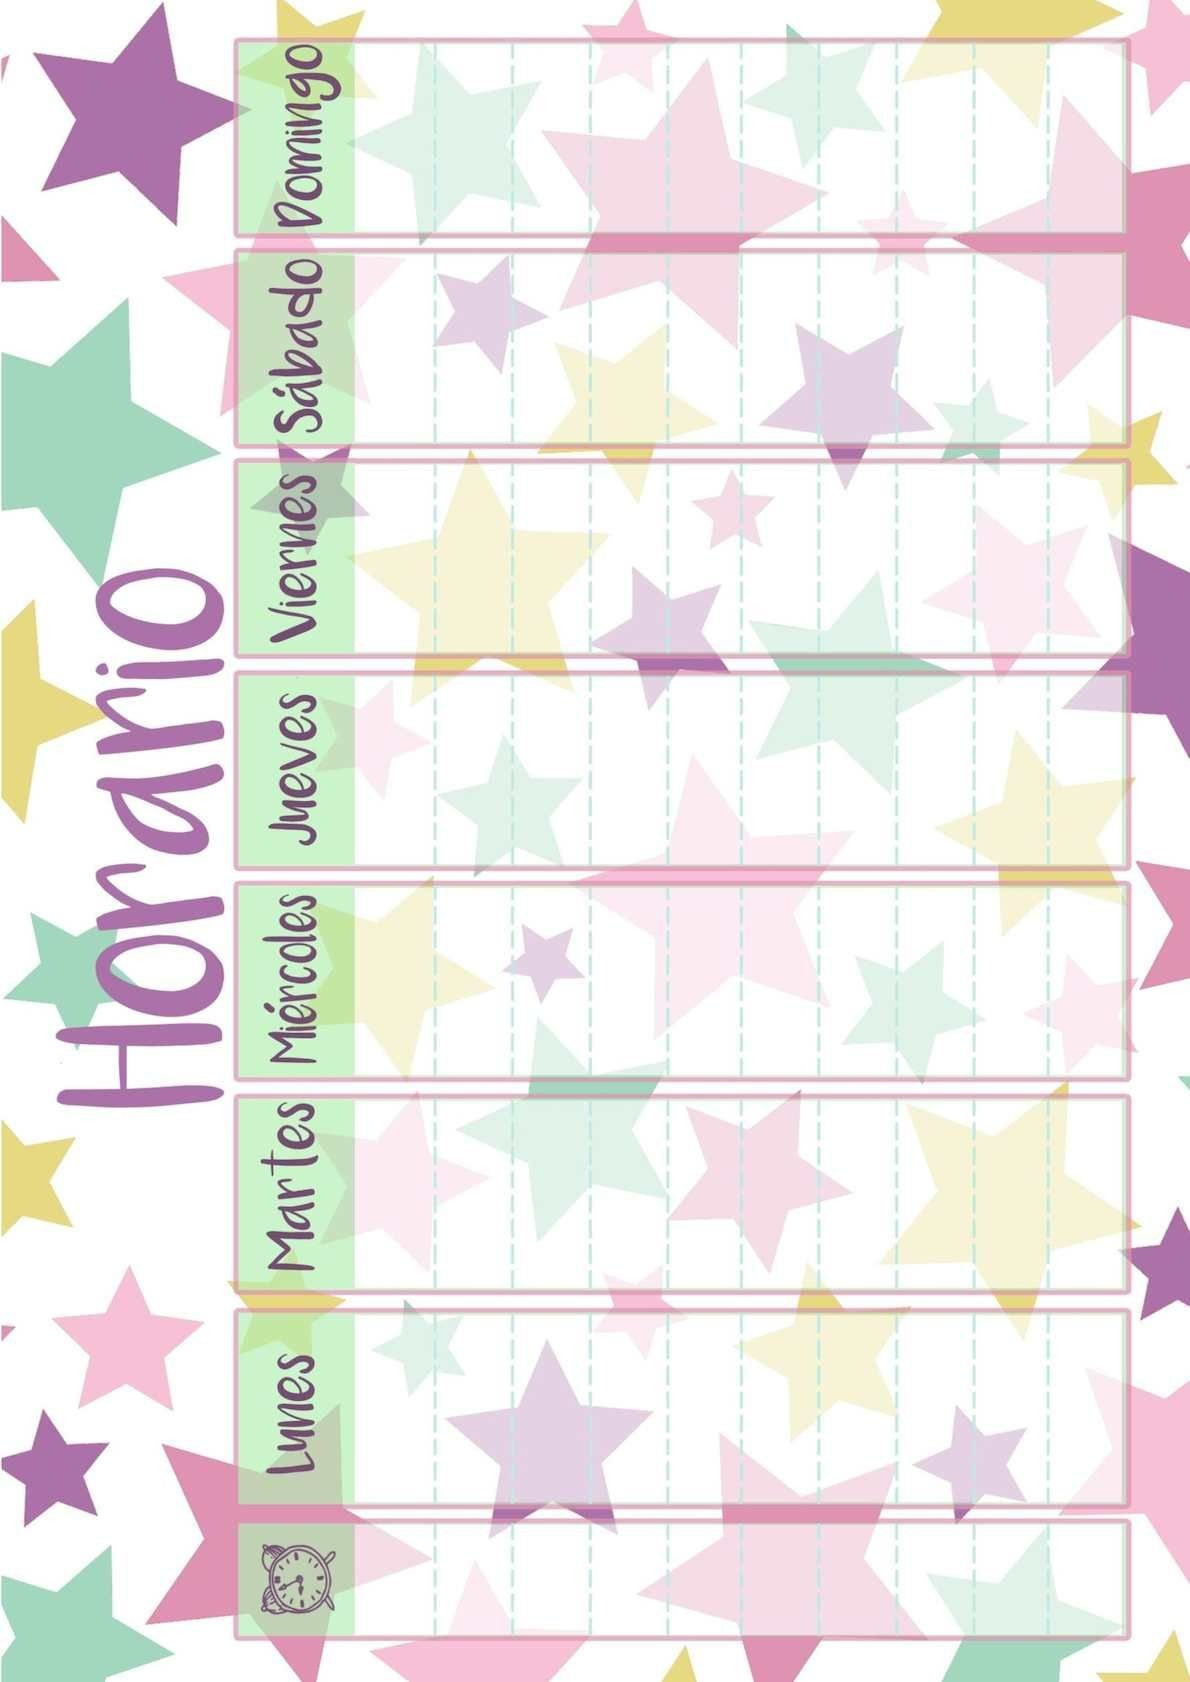 Calendario Imprimir Junio Más Actual Pack Descargable Planifica Tu A±o 2016 Of Calendario Imprimir Junio Actual Calendario 2019 Colorido 12 Meses Meses Pinterest